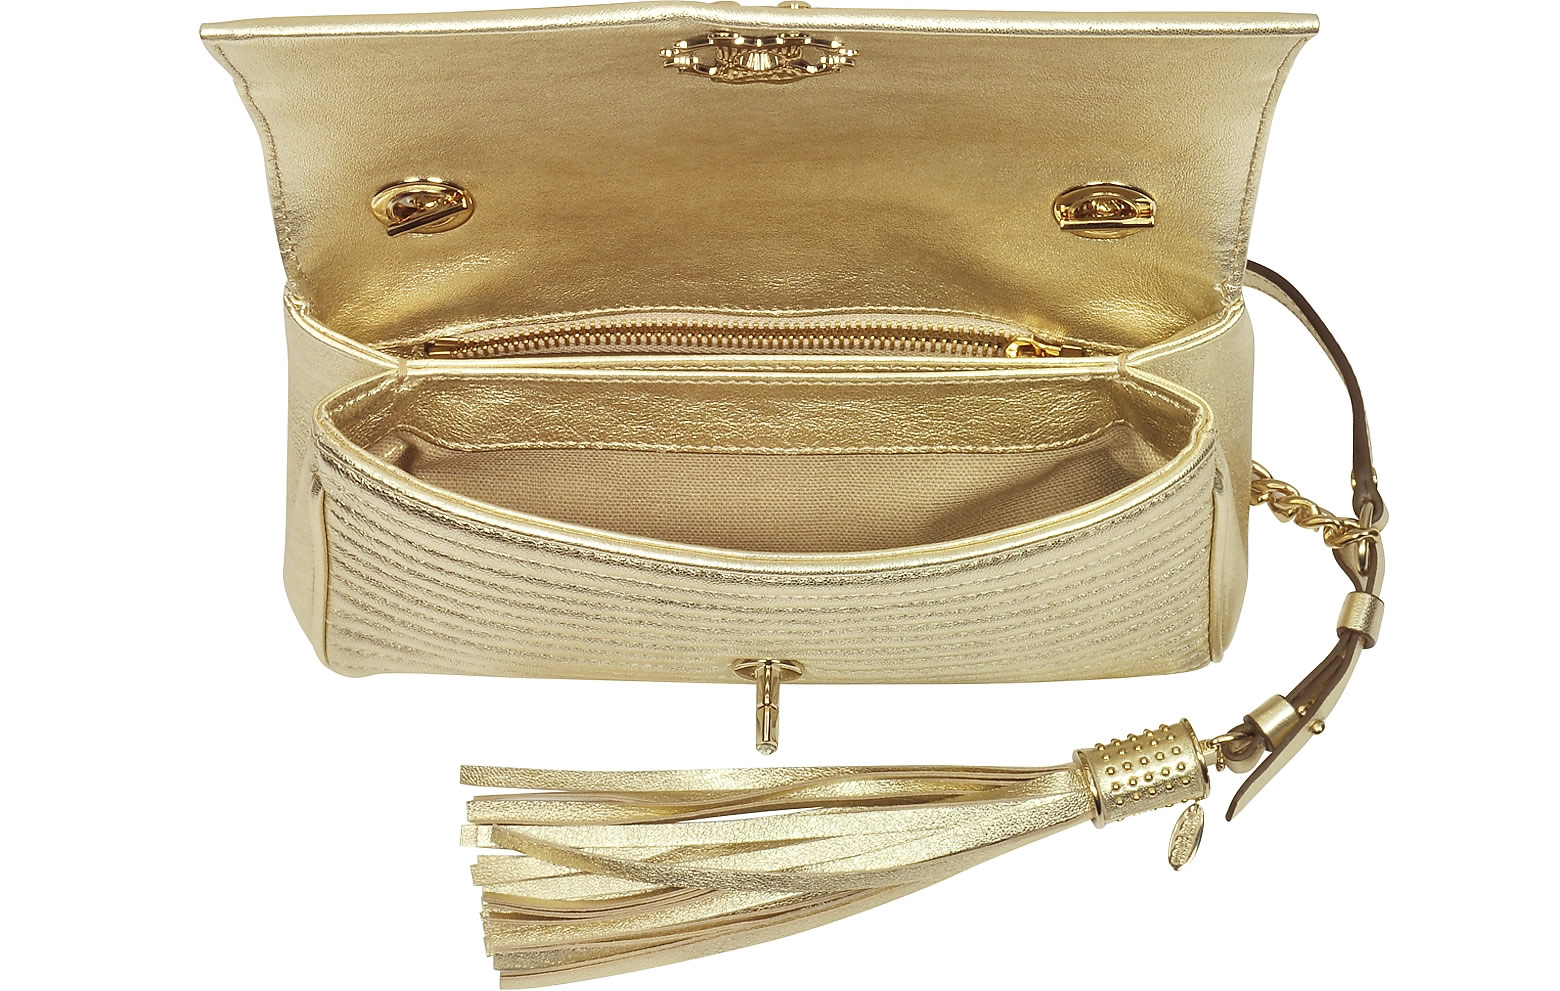 Mondo Bridal - ROBERTO CAVALLI - Platinum Gold Laminated Quilted Nappa Leather Small Shoulder Bag